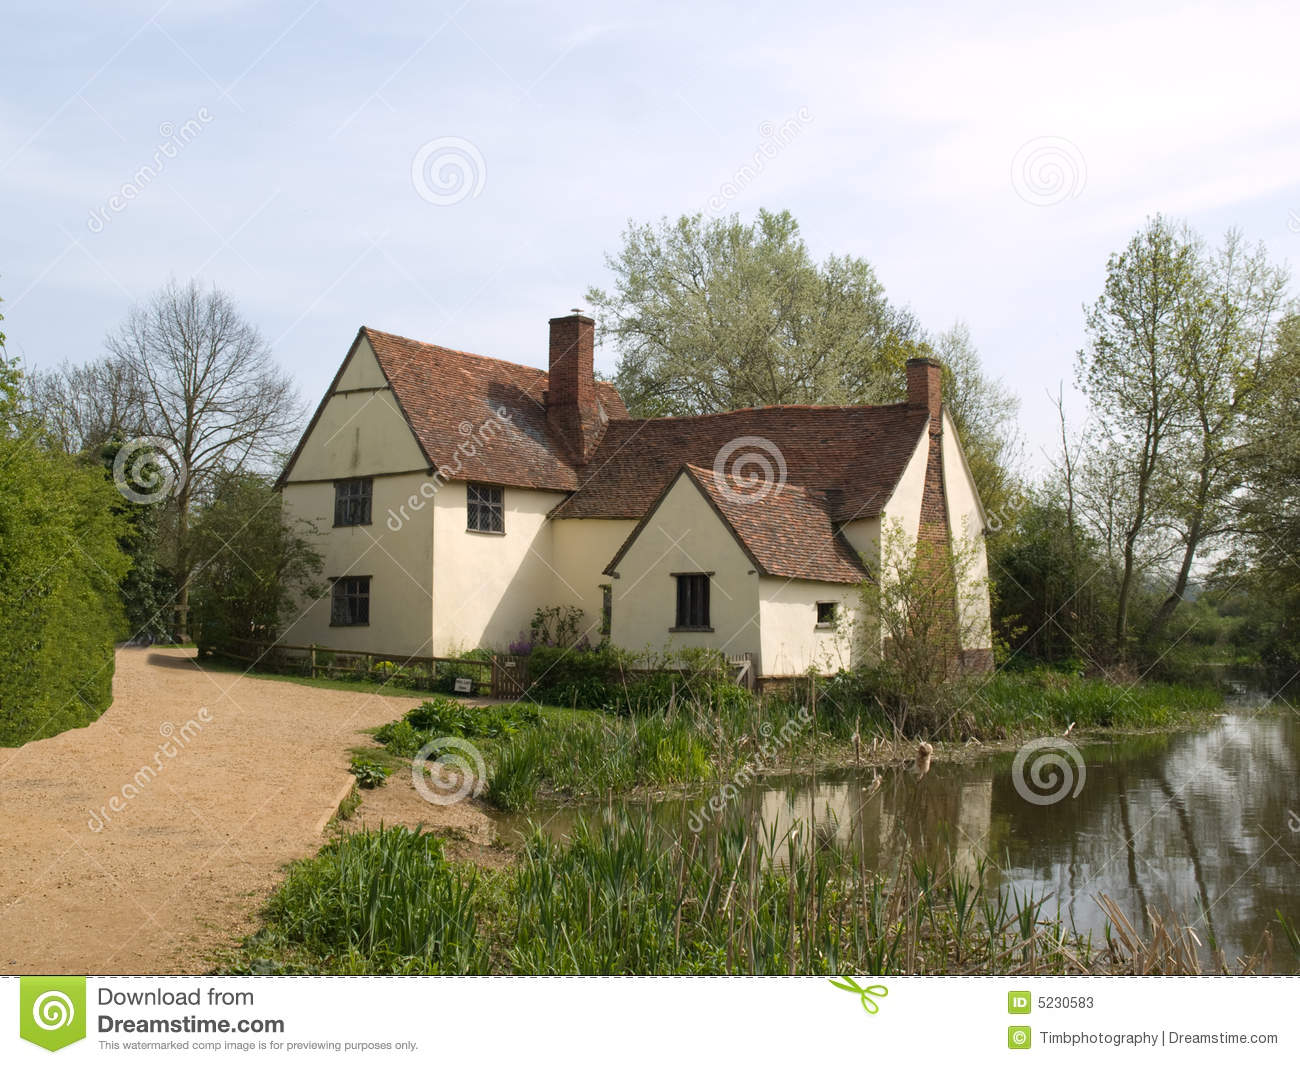 Maison de campagne anglaise image stock image 5230583 - Maison de campagne anglaise ...